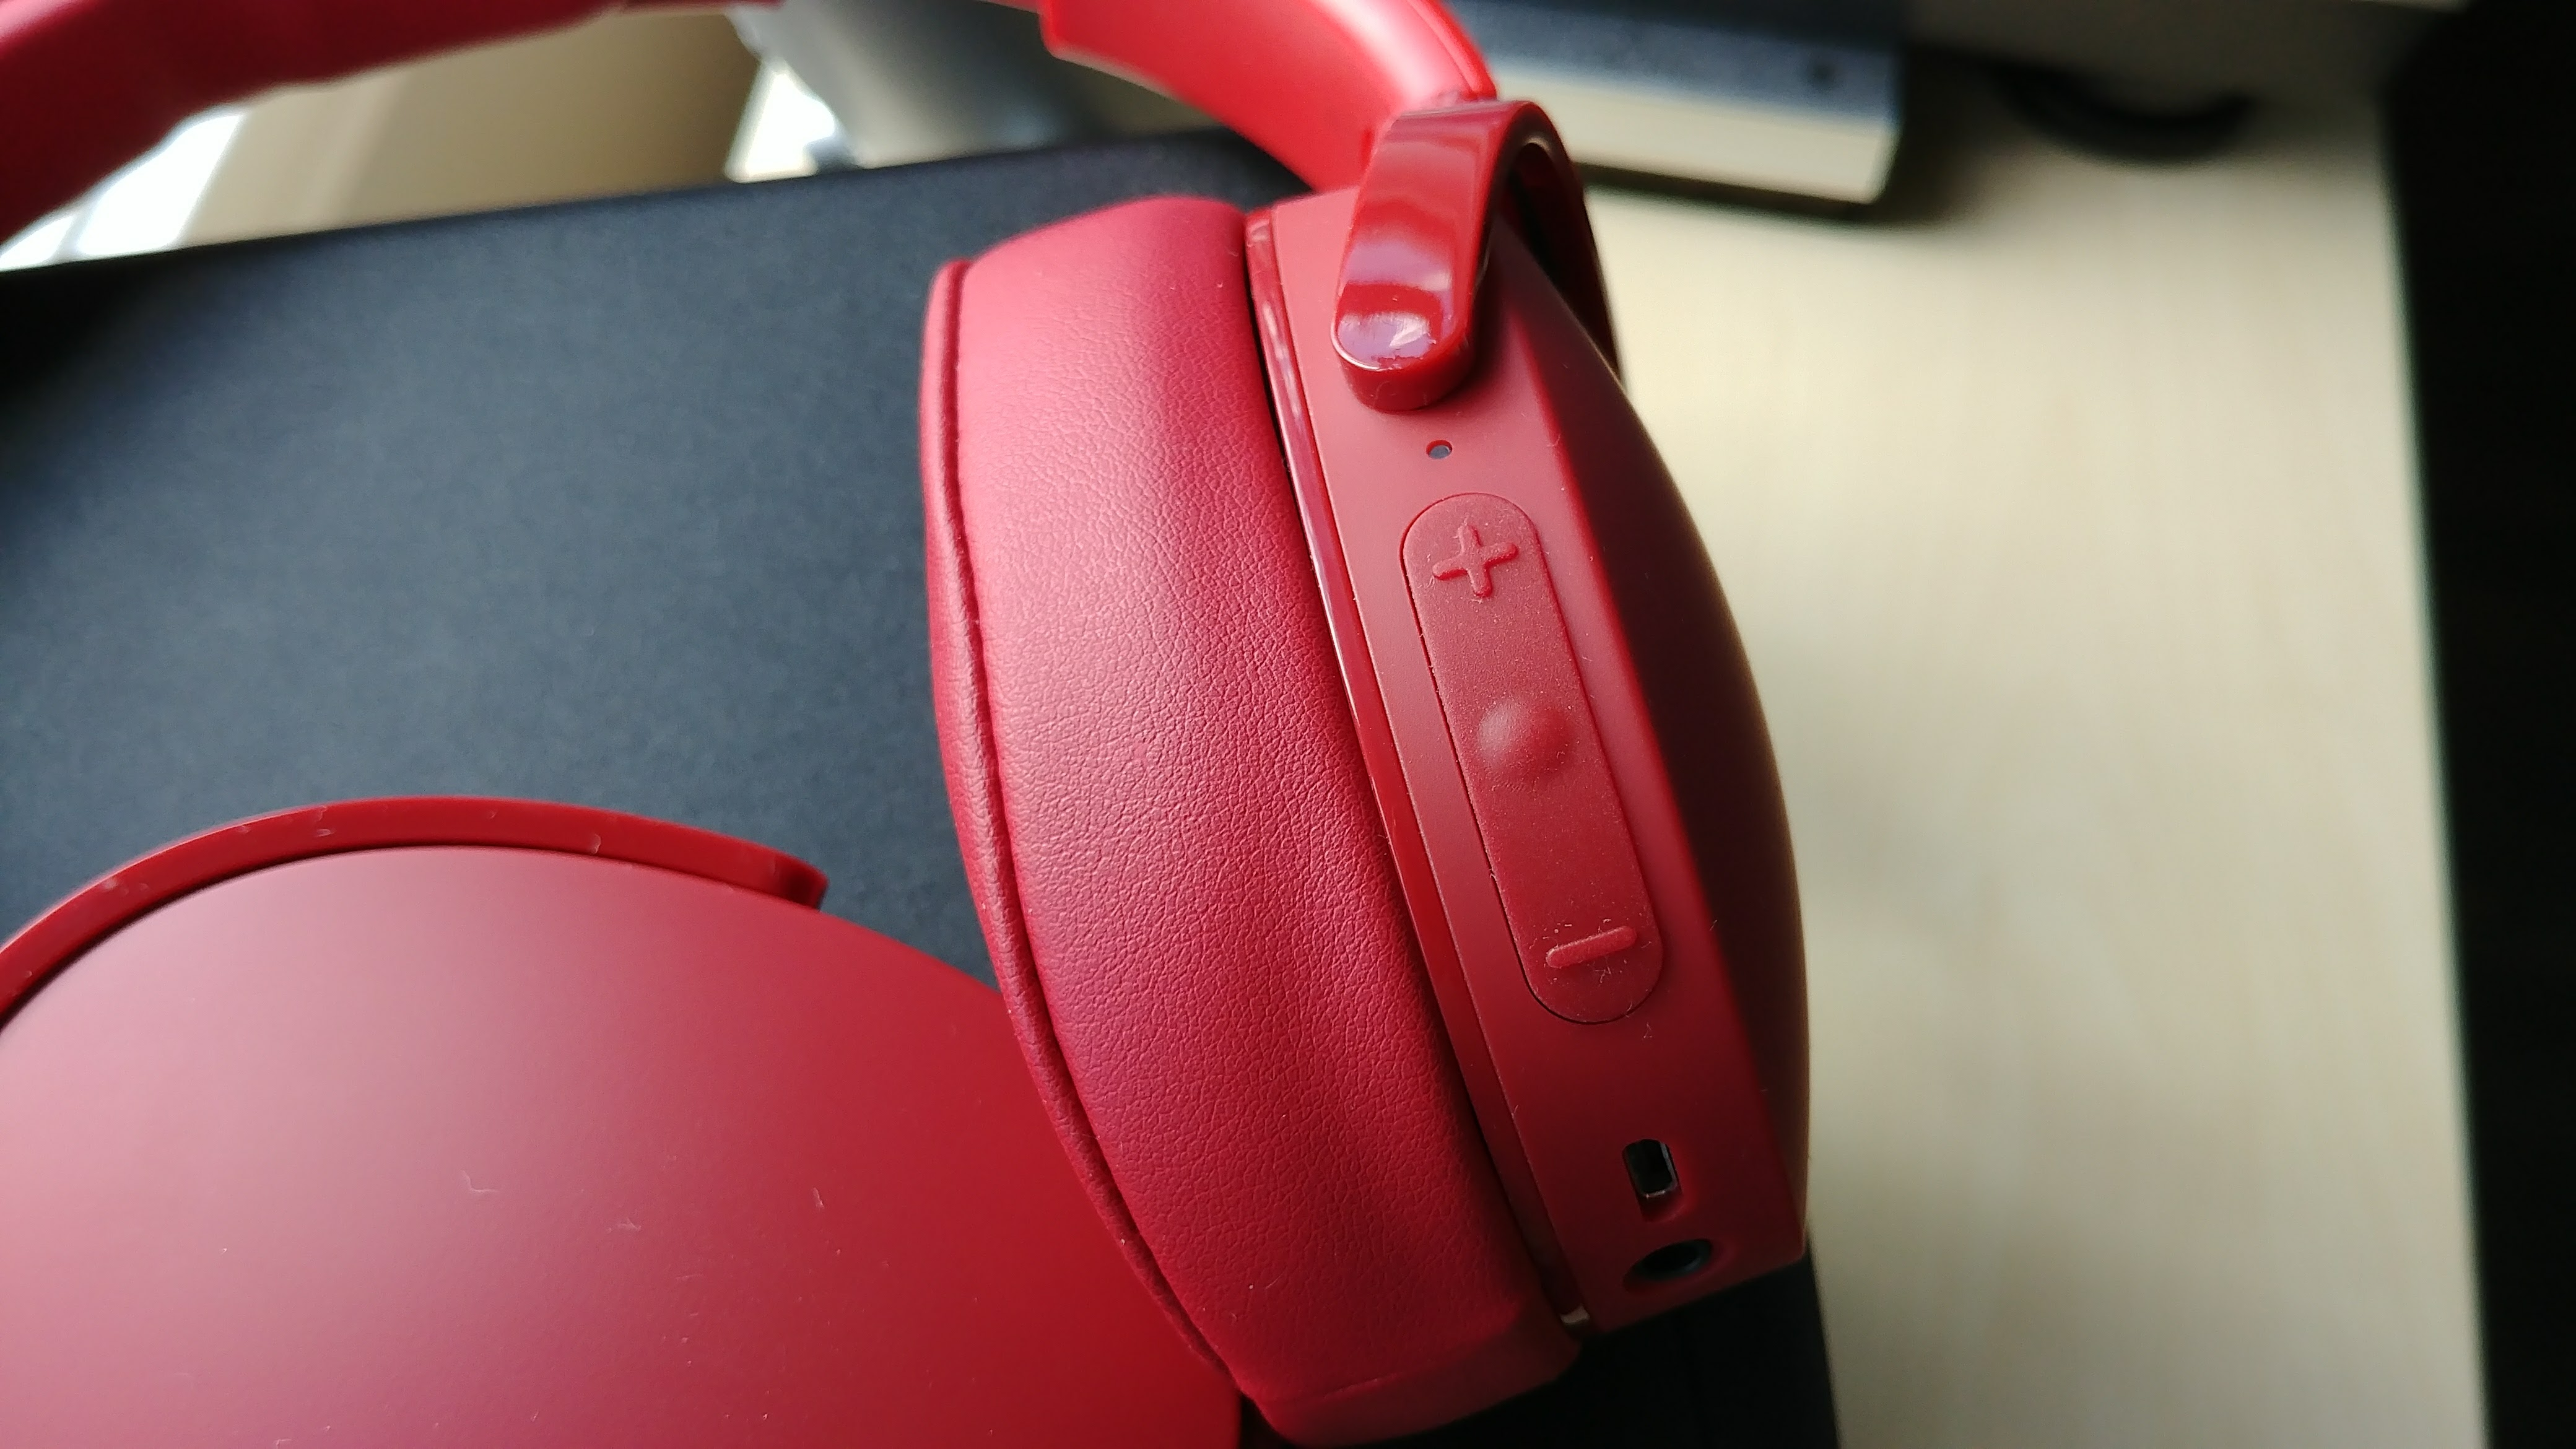 Skullcandy Hesh 3 Wireless Headphones Review Junkies Headphone Jack Wiring Diagram The Right Earcup Also Houses 35mm For Listening In Wired Mode If Battery Runs Out Speaking Of Batteries Charging Is Done Via A Microusb